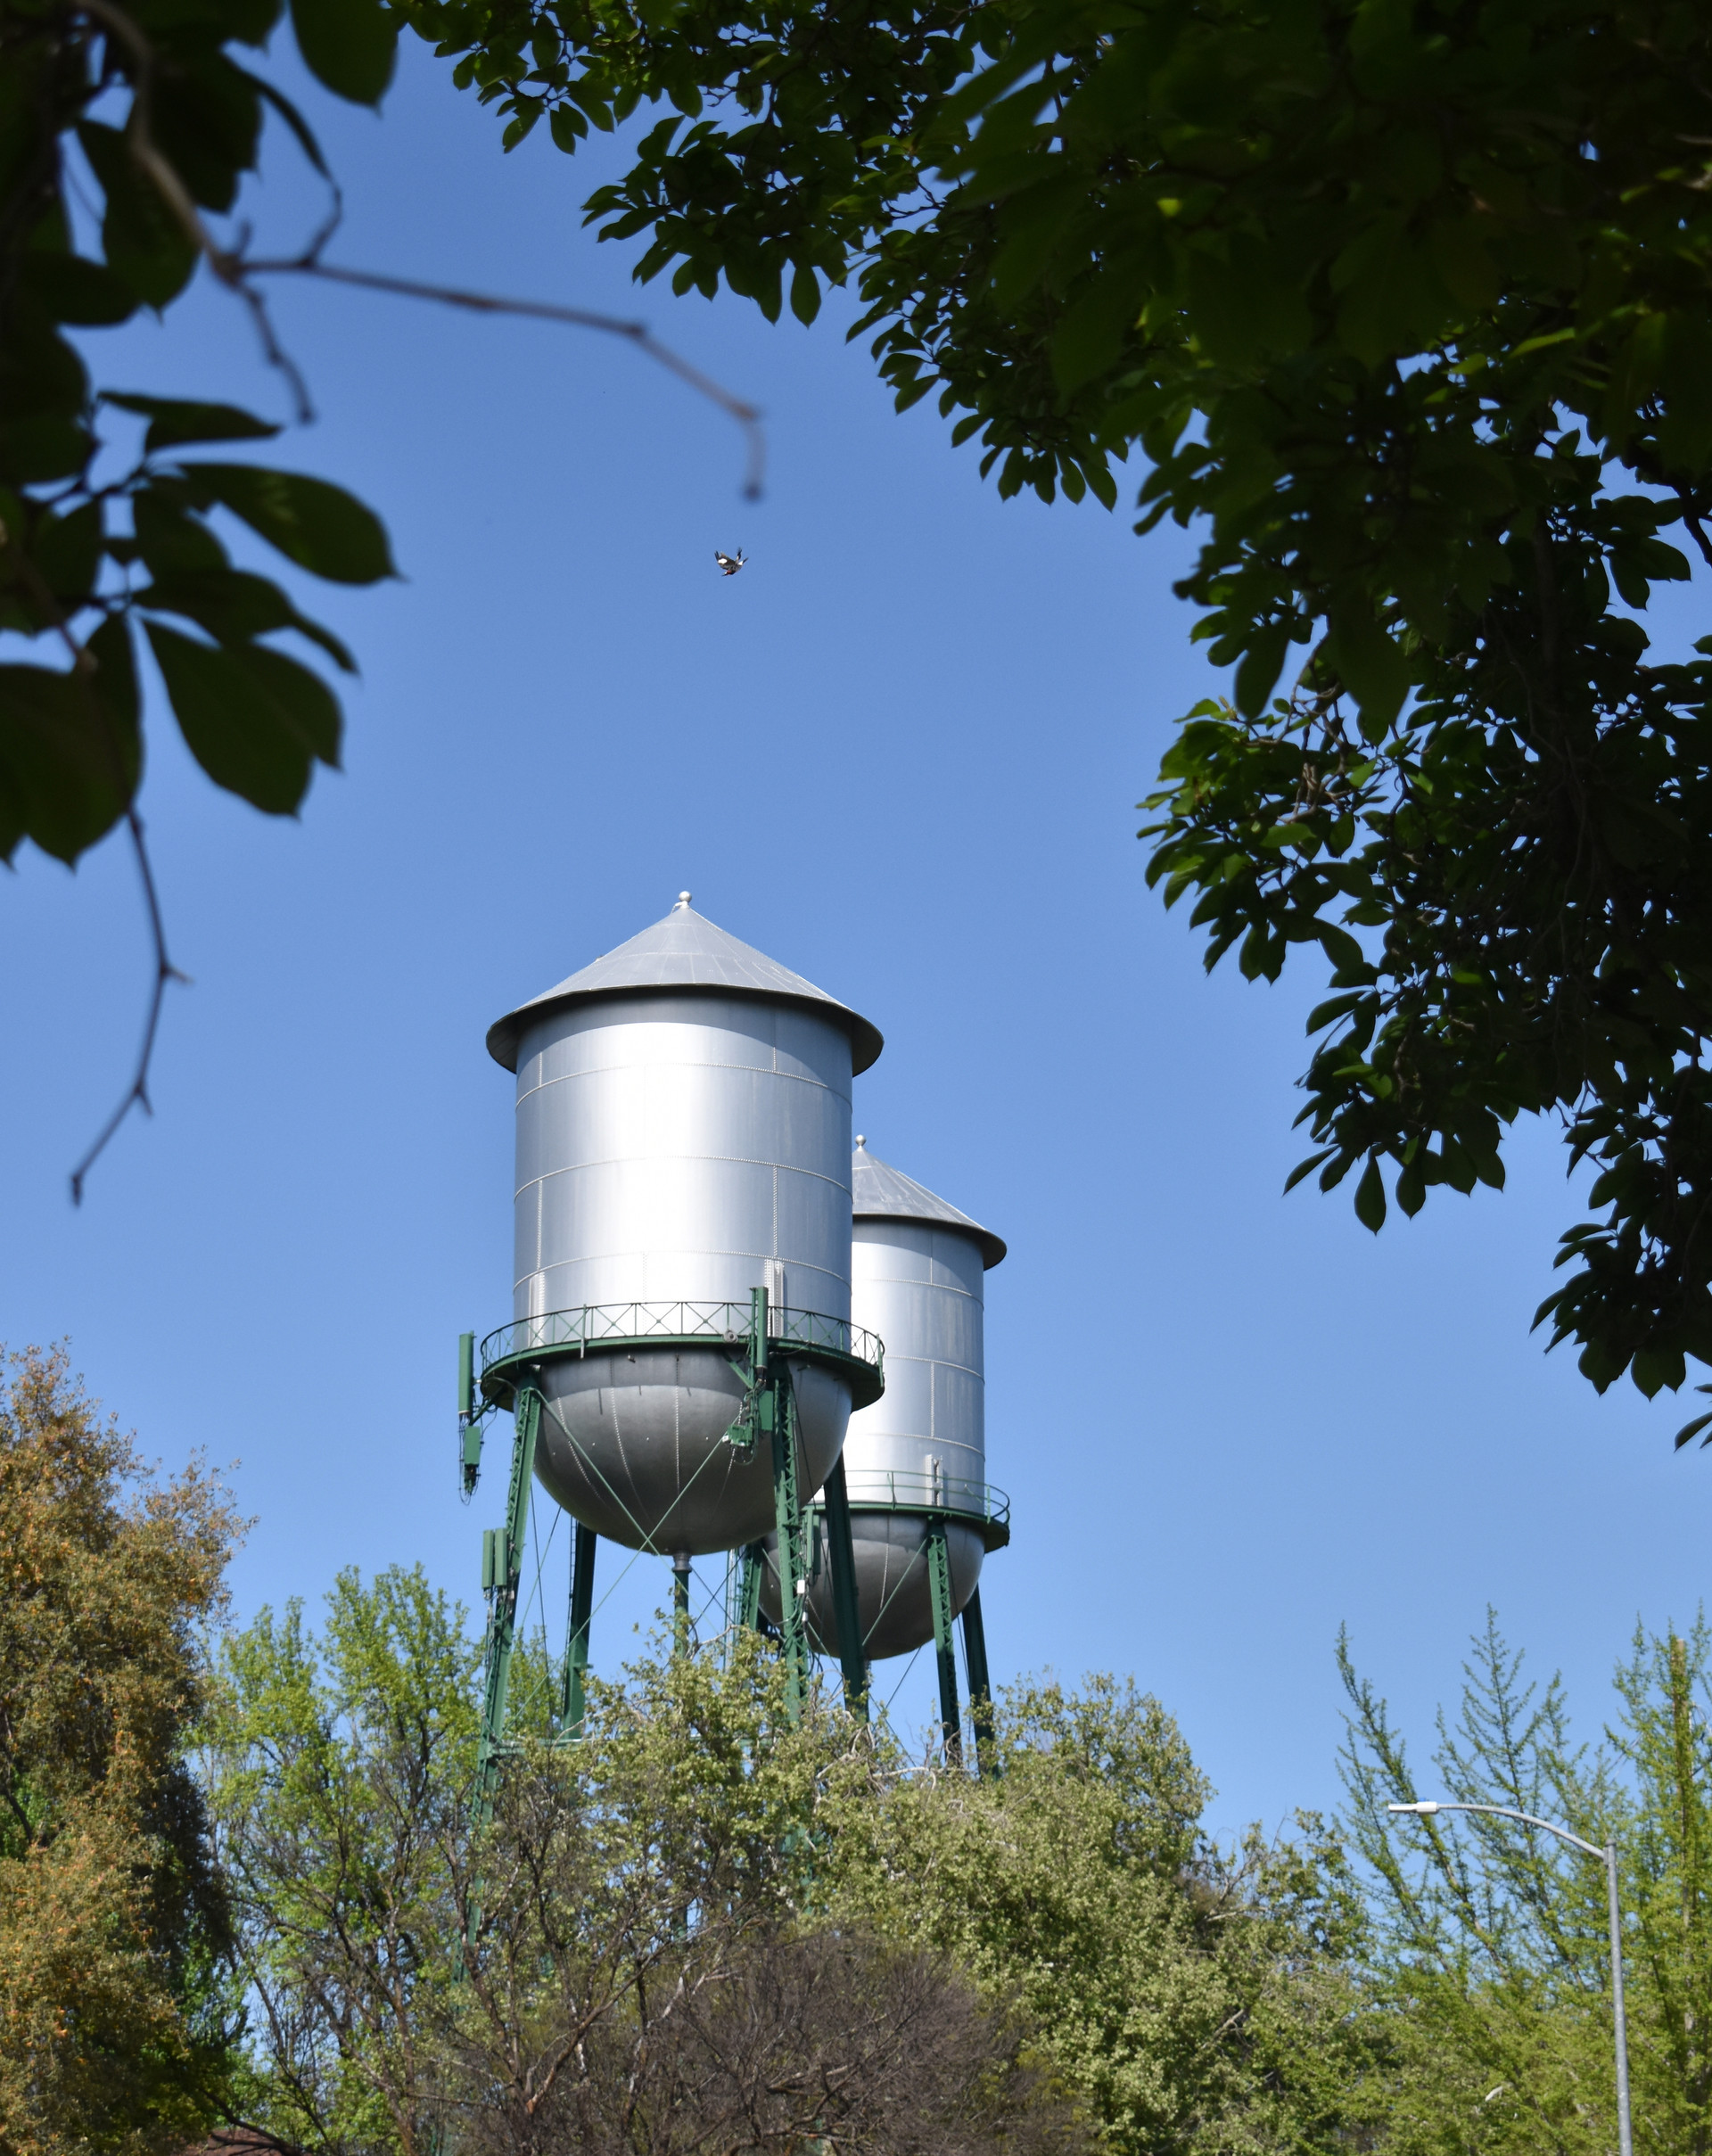 Twin water towers are a nearby landmark